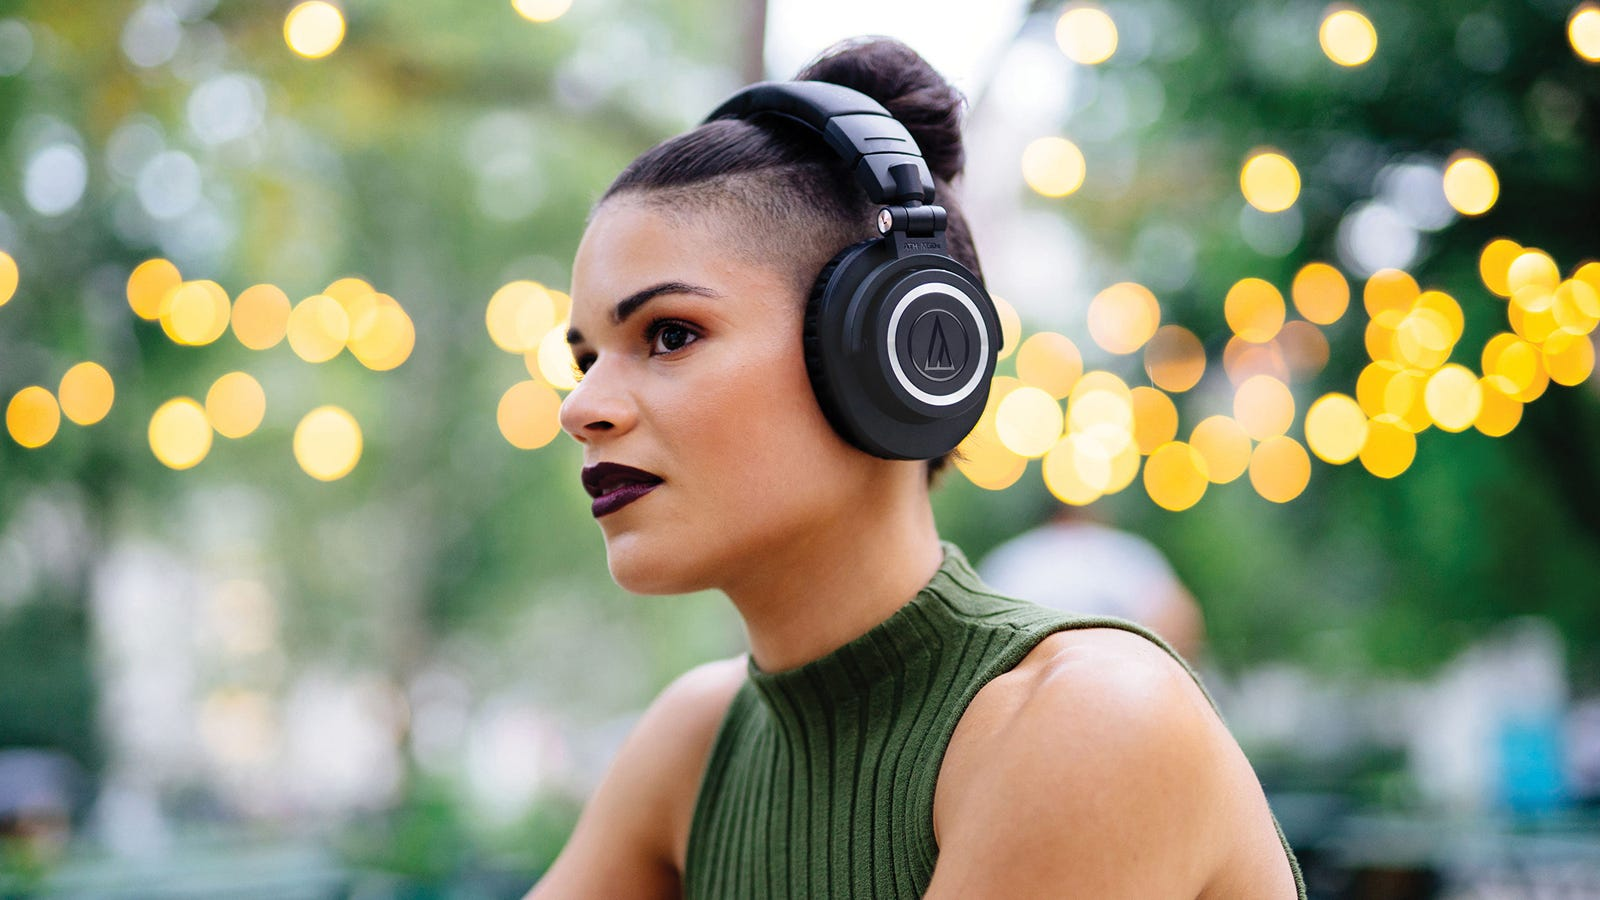 Image of a woman wearing headphones